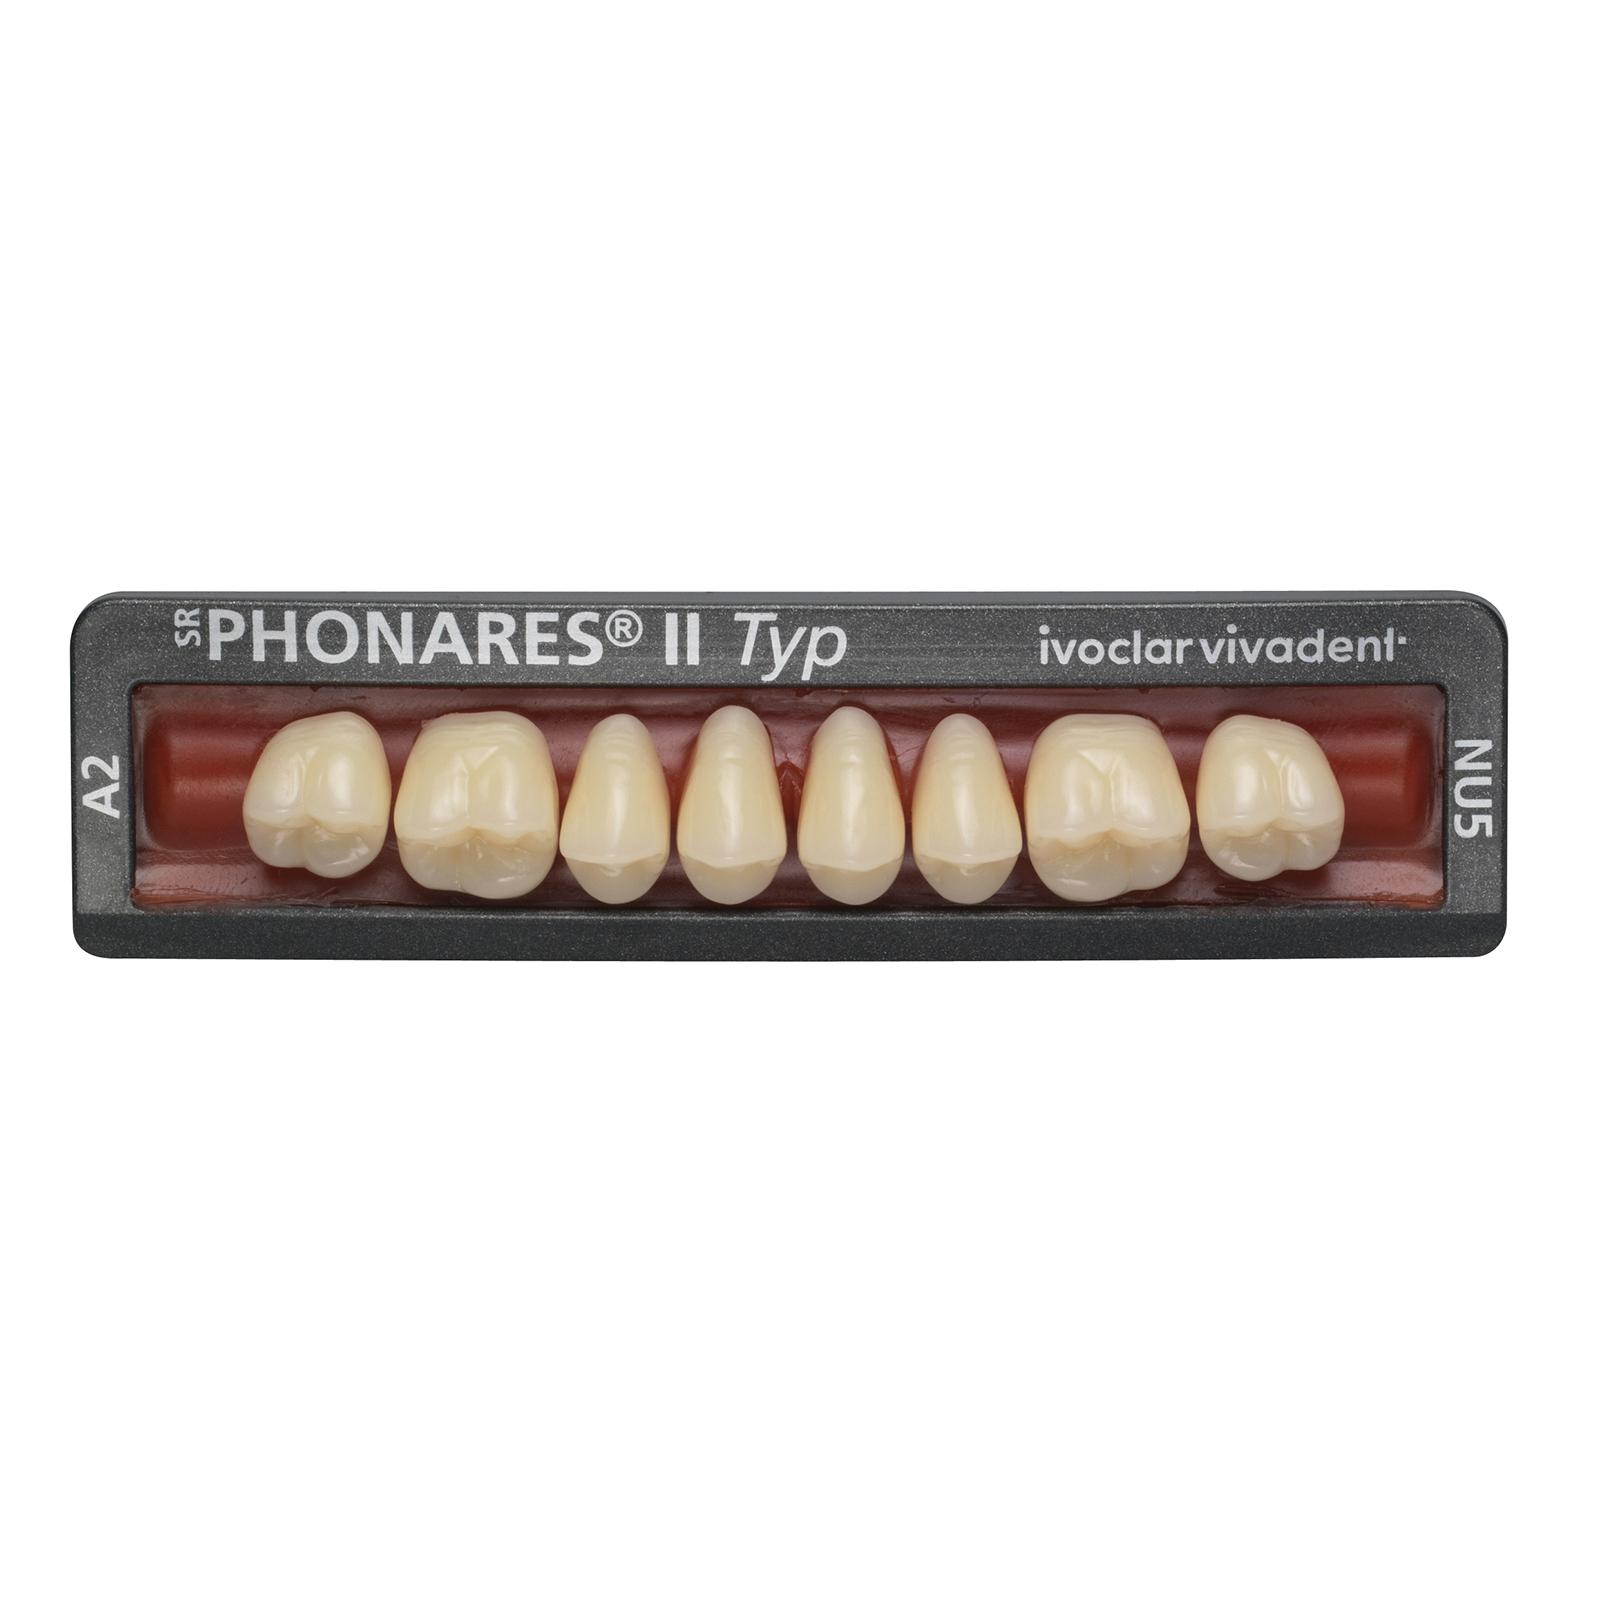 SR Phonares II Typ set of 8